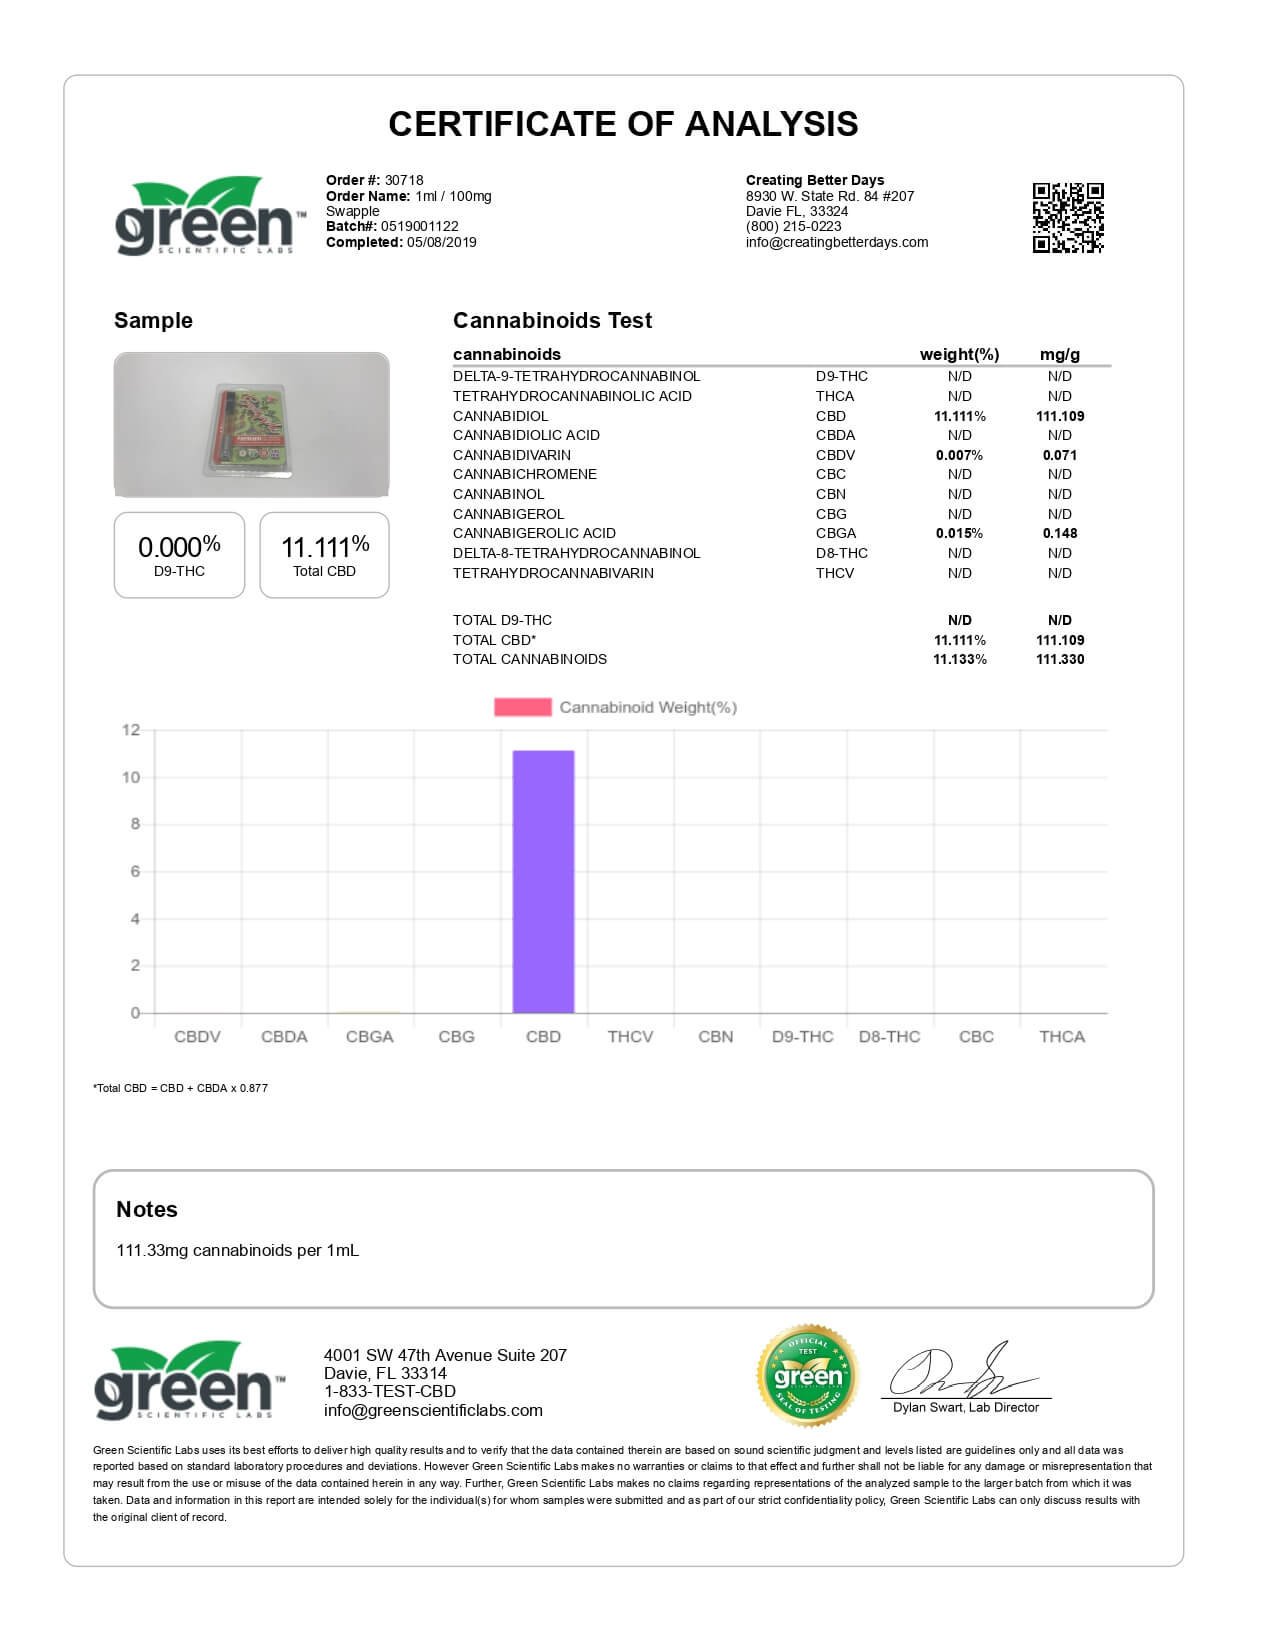 Creating Better Days CBD Cartridge Swapple 100mg Lab Report